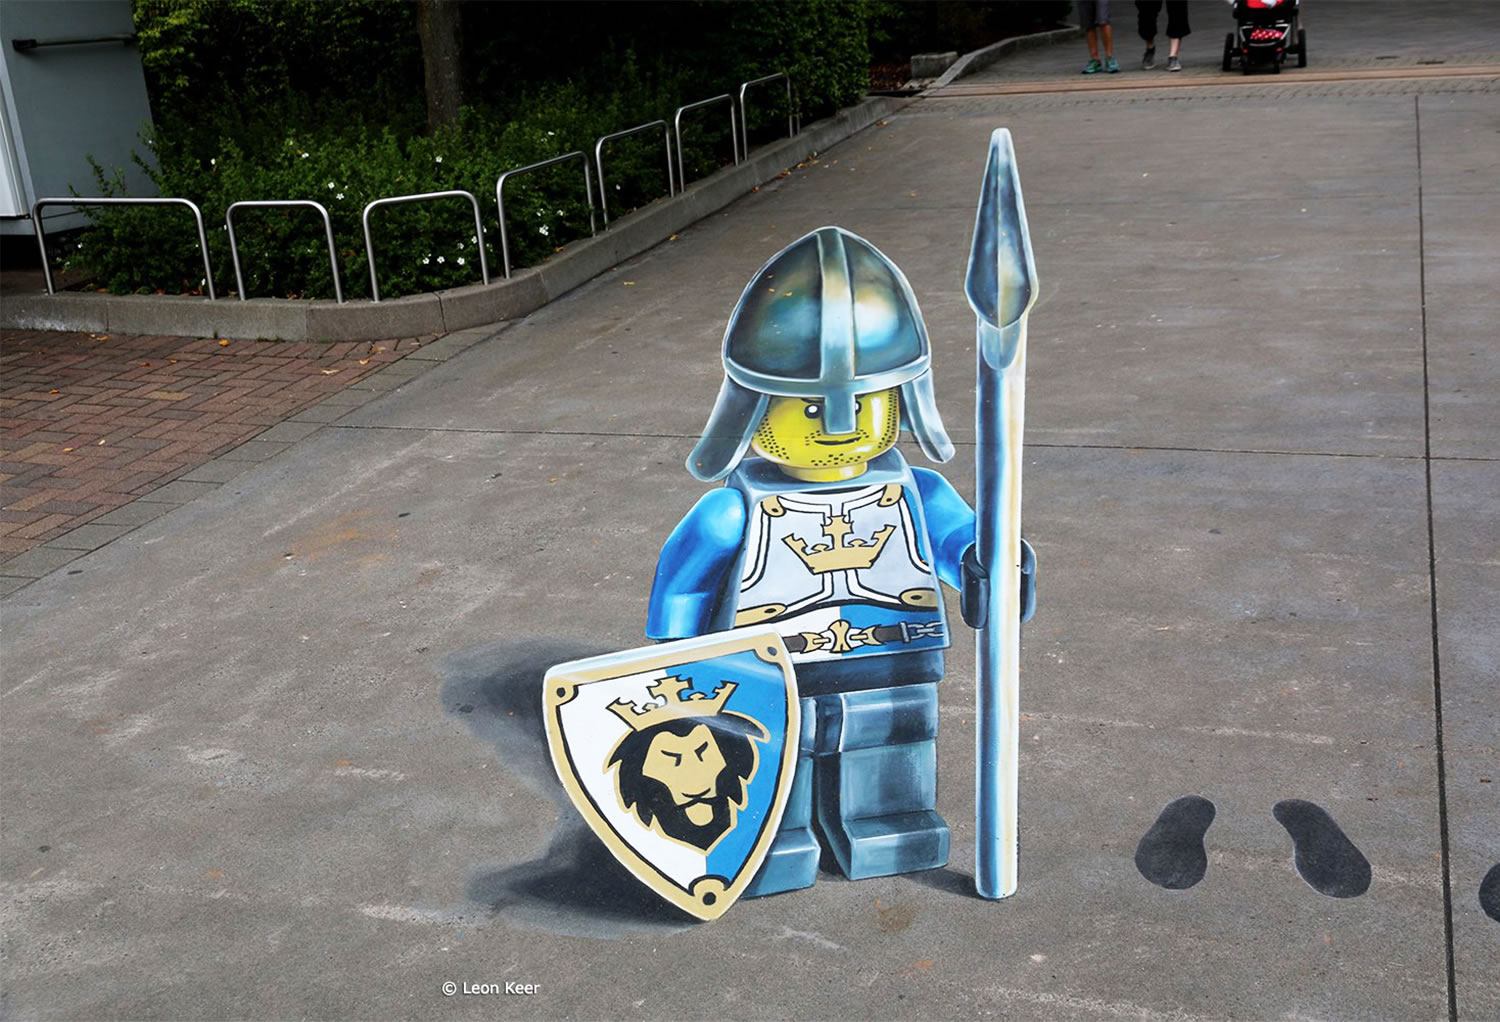 front view of lego soldier, anamorphic 3d art by leon keer